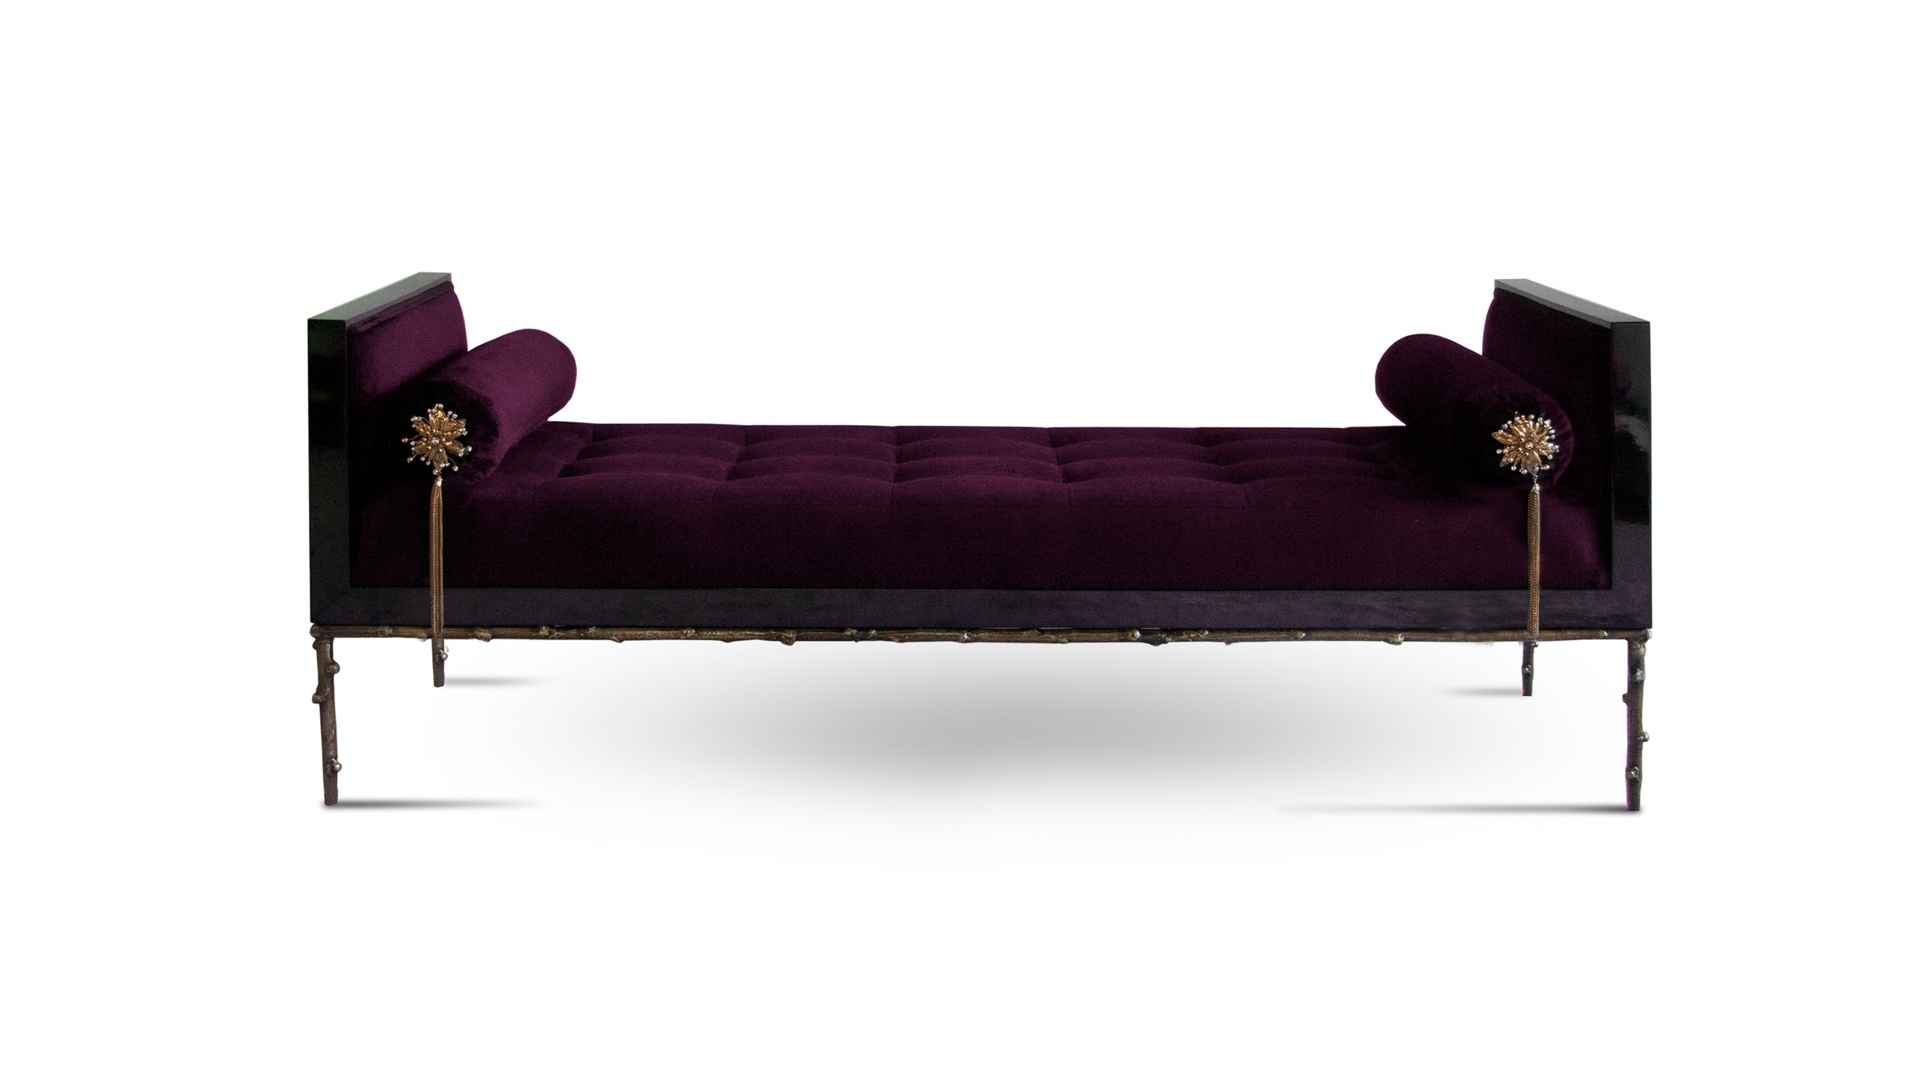 Newest The Best Benches And Chaises For Your Home Decor Regarding Chaise Benchs (View 8 of 15)